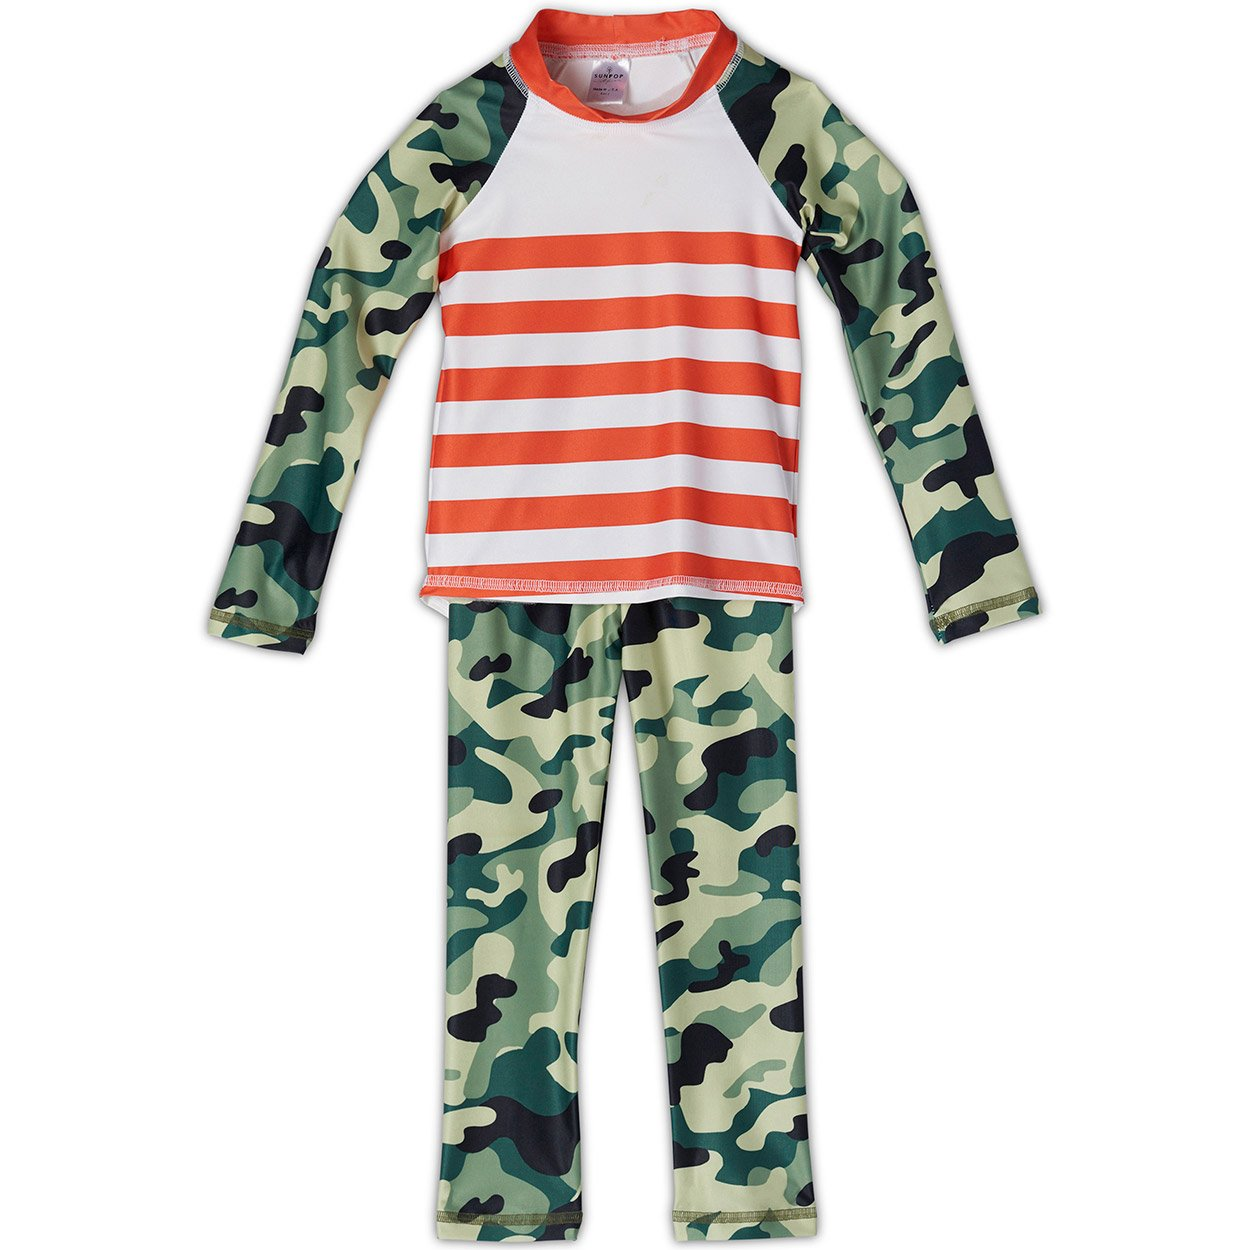 Green Camo 2pc Rash Guard Set UPF 50+ for Girls